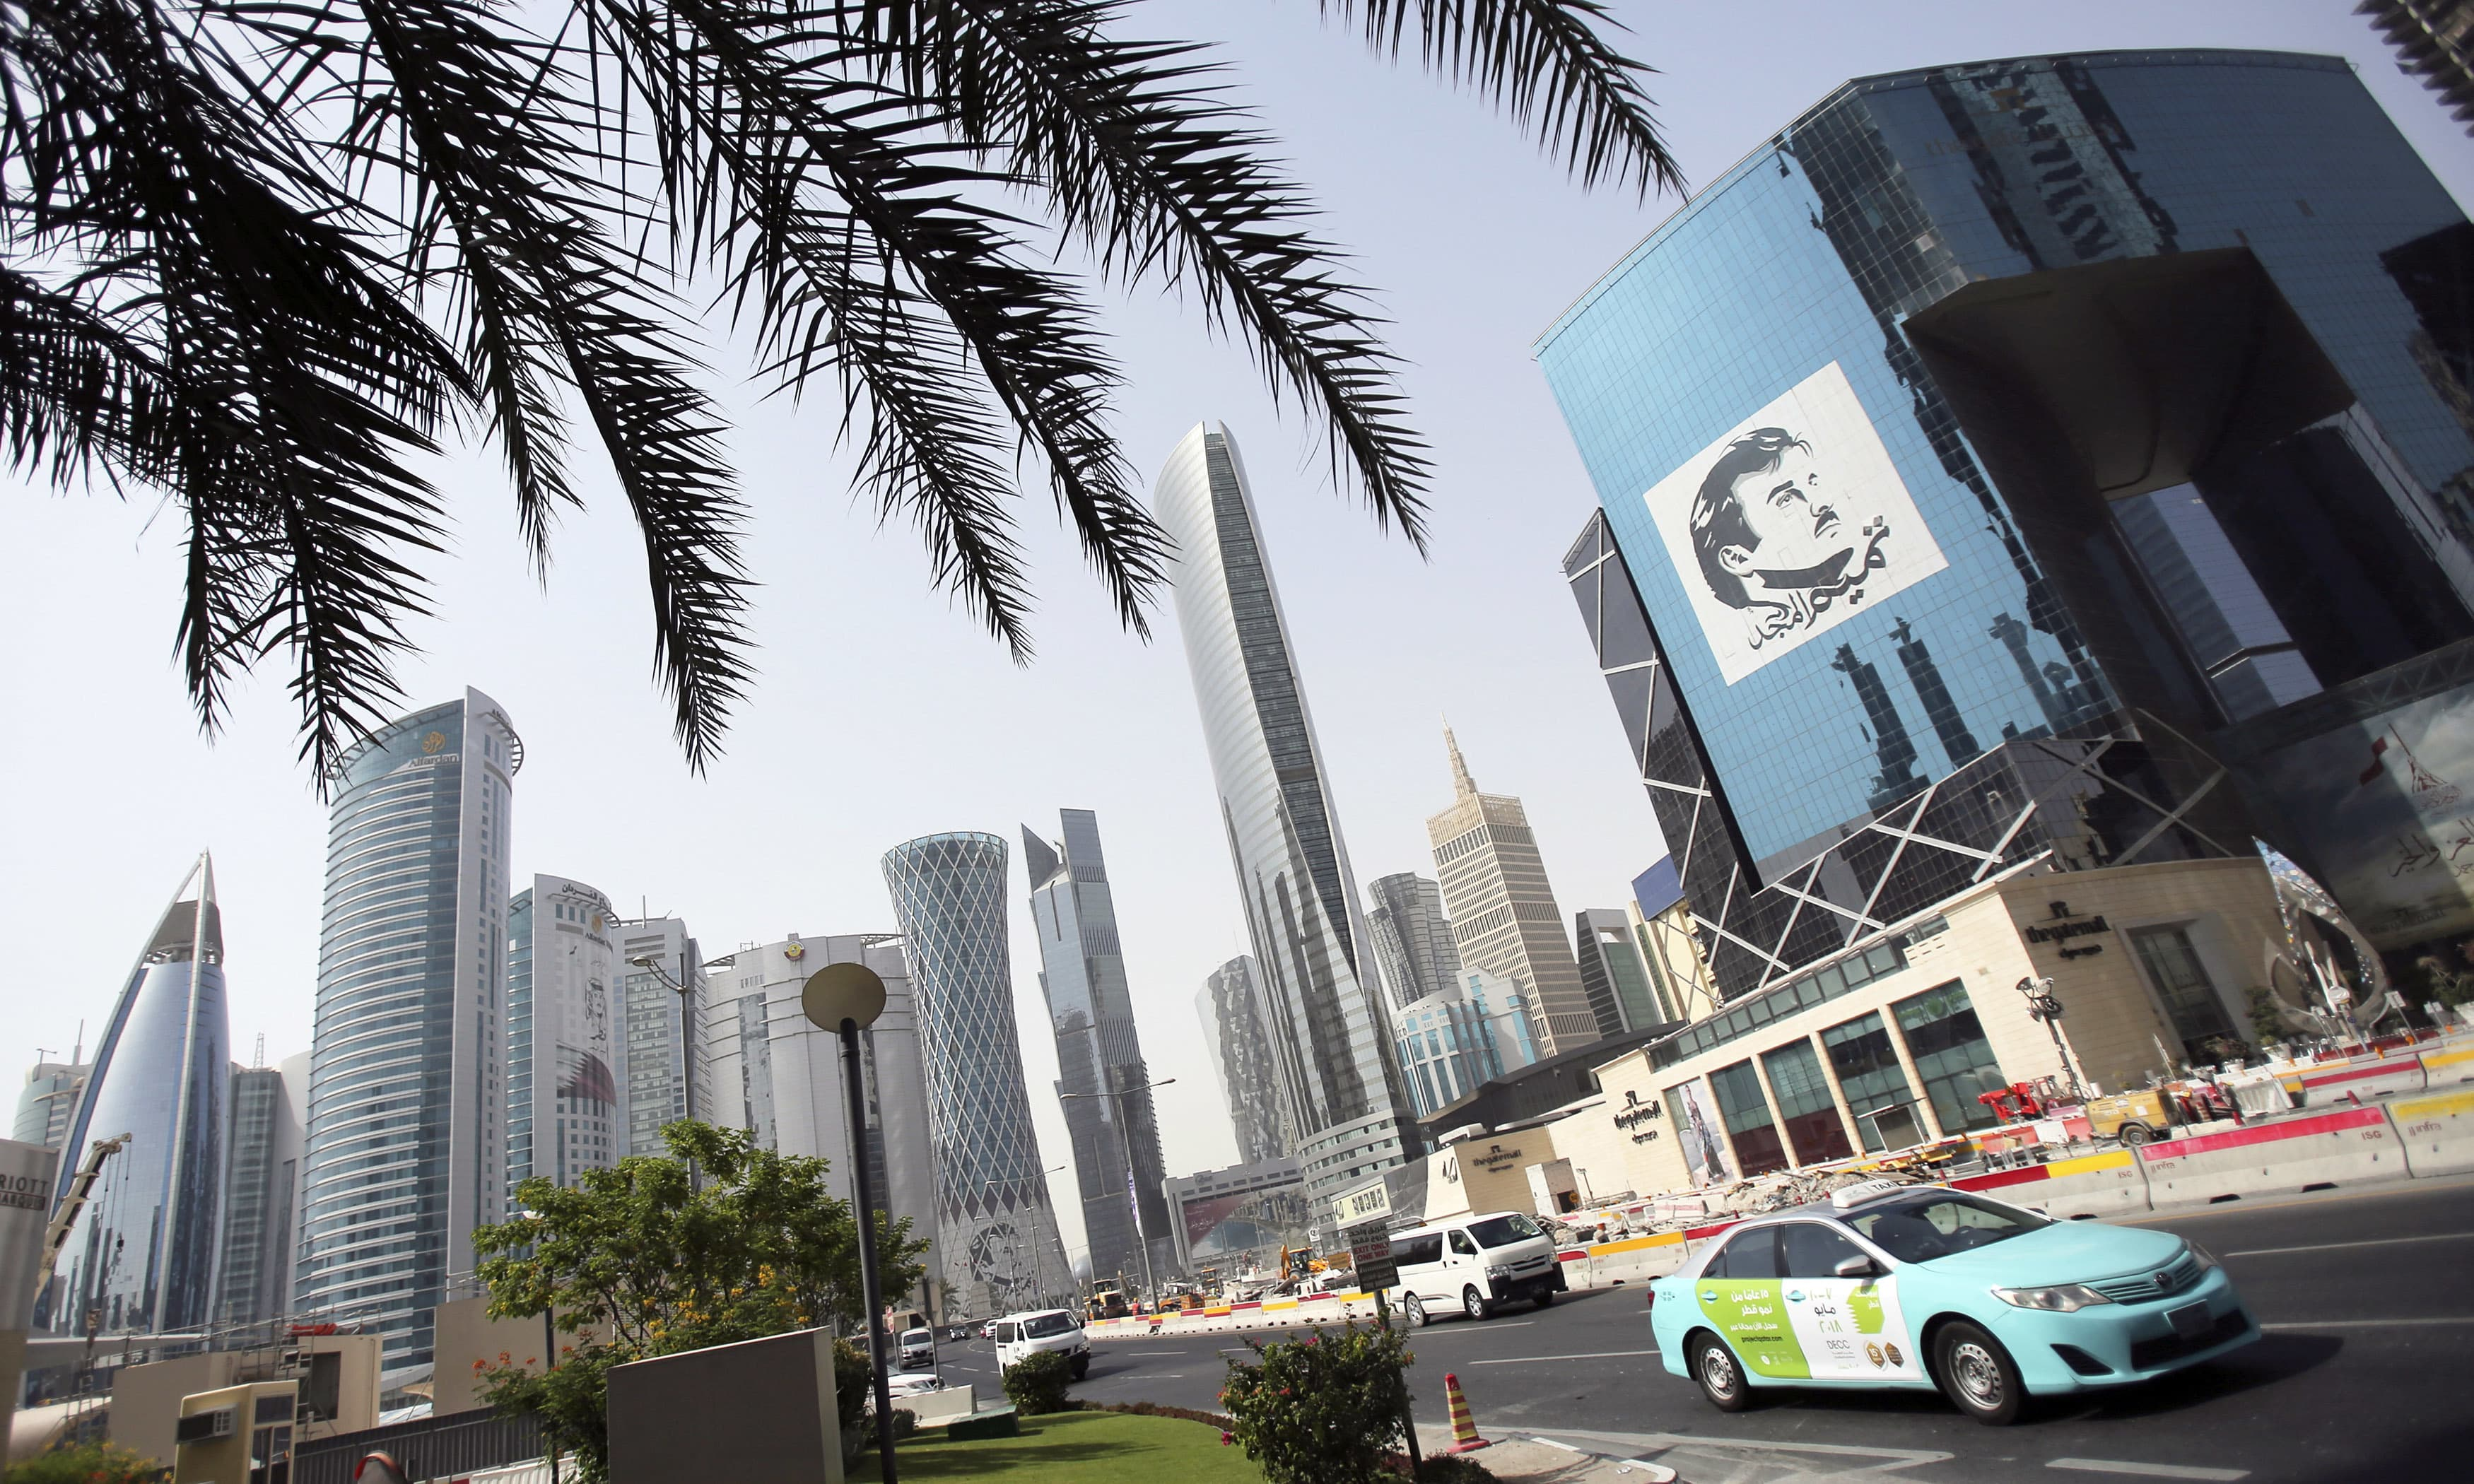 A taxi passes by a building with the image of the Emir of Qatar, Sheikh Tamim bin Hamad Al Thani, in Doha. —AP